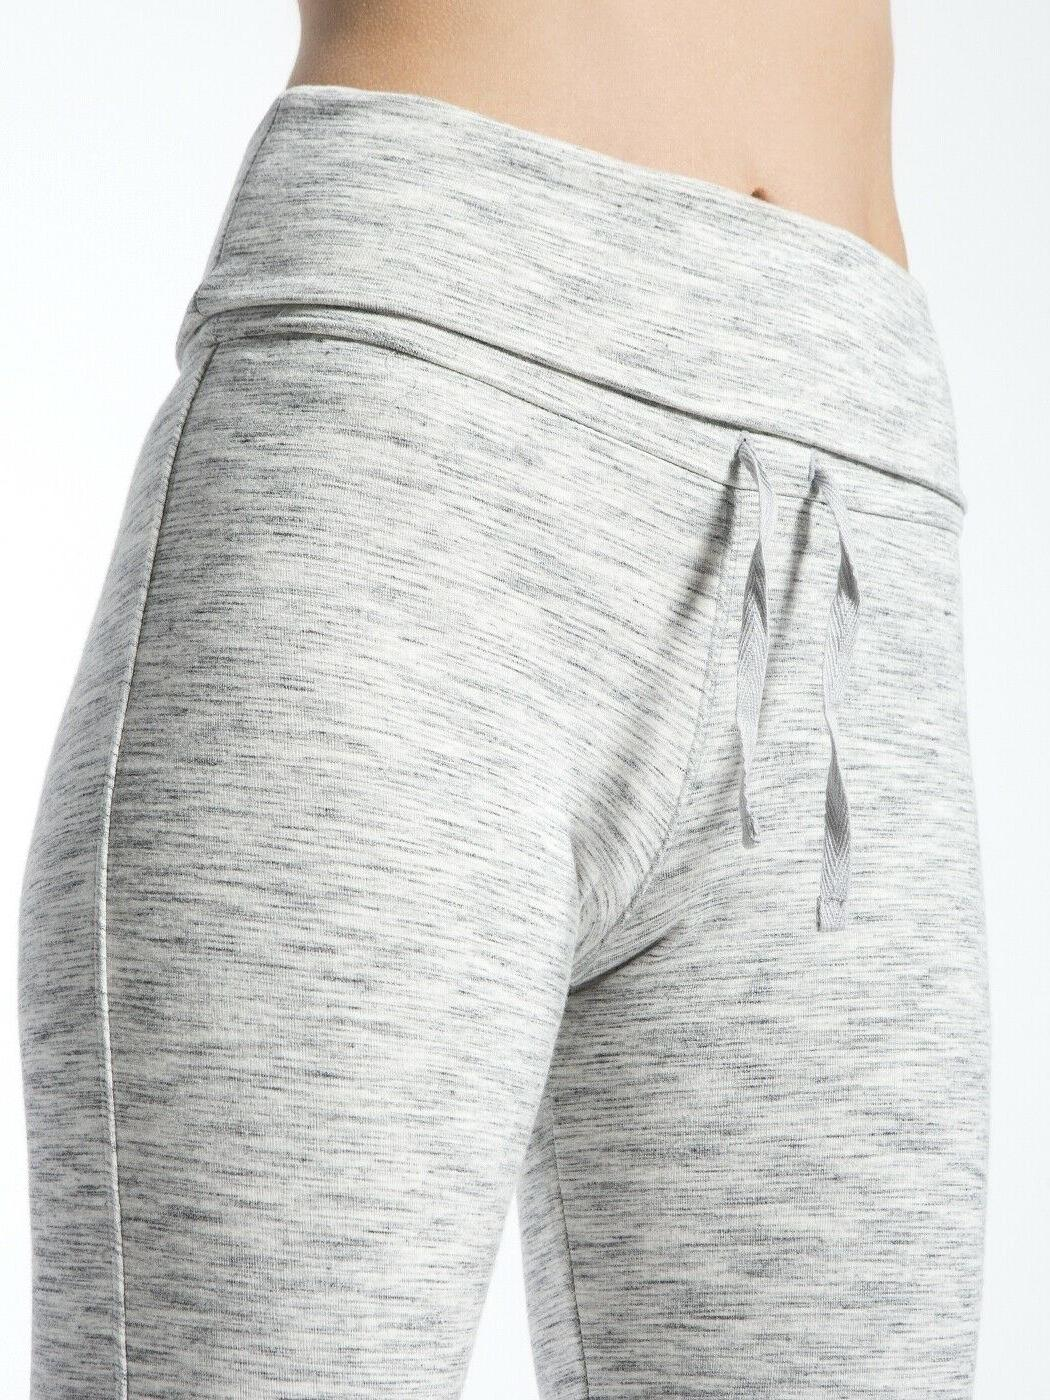 NWT People FP Movement Pant M